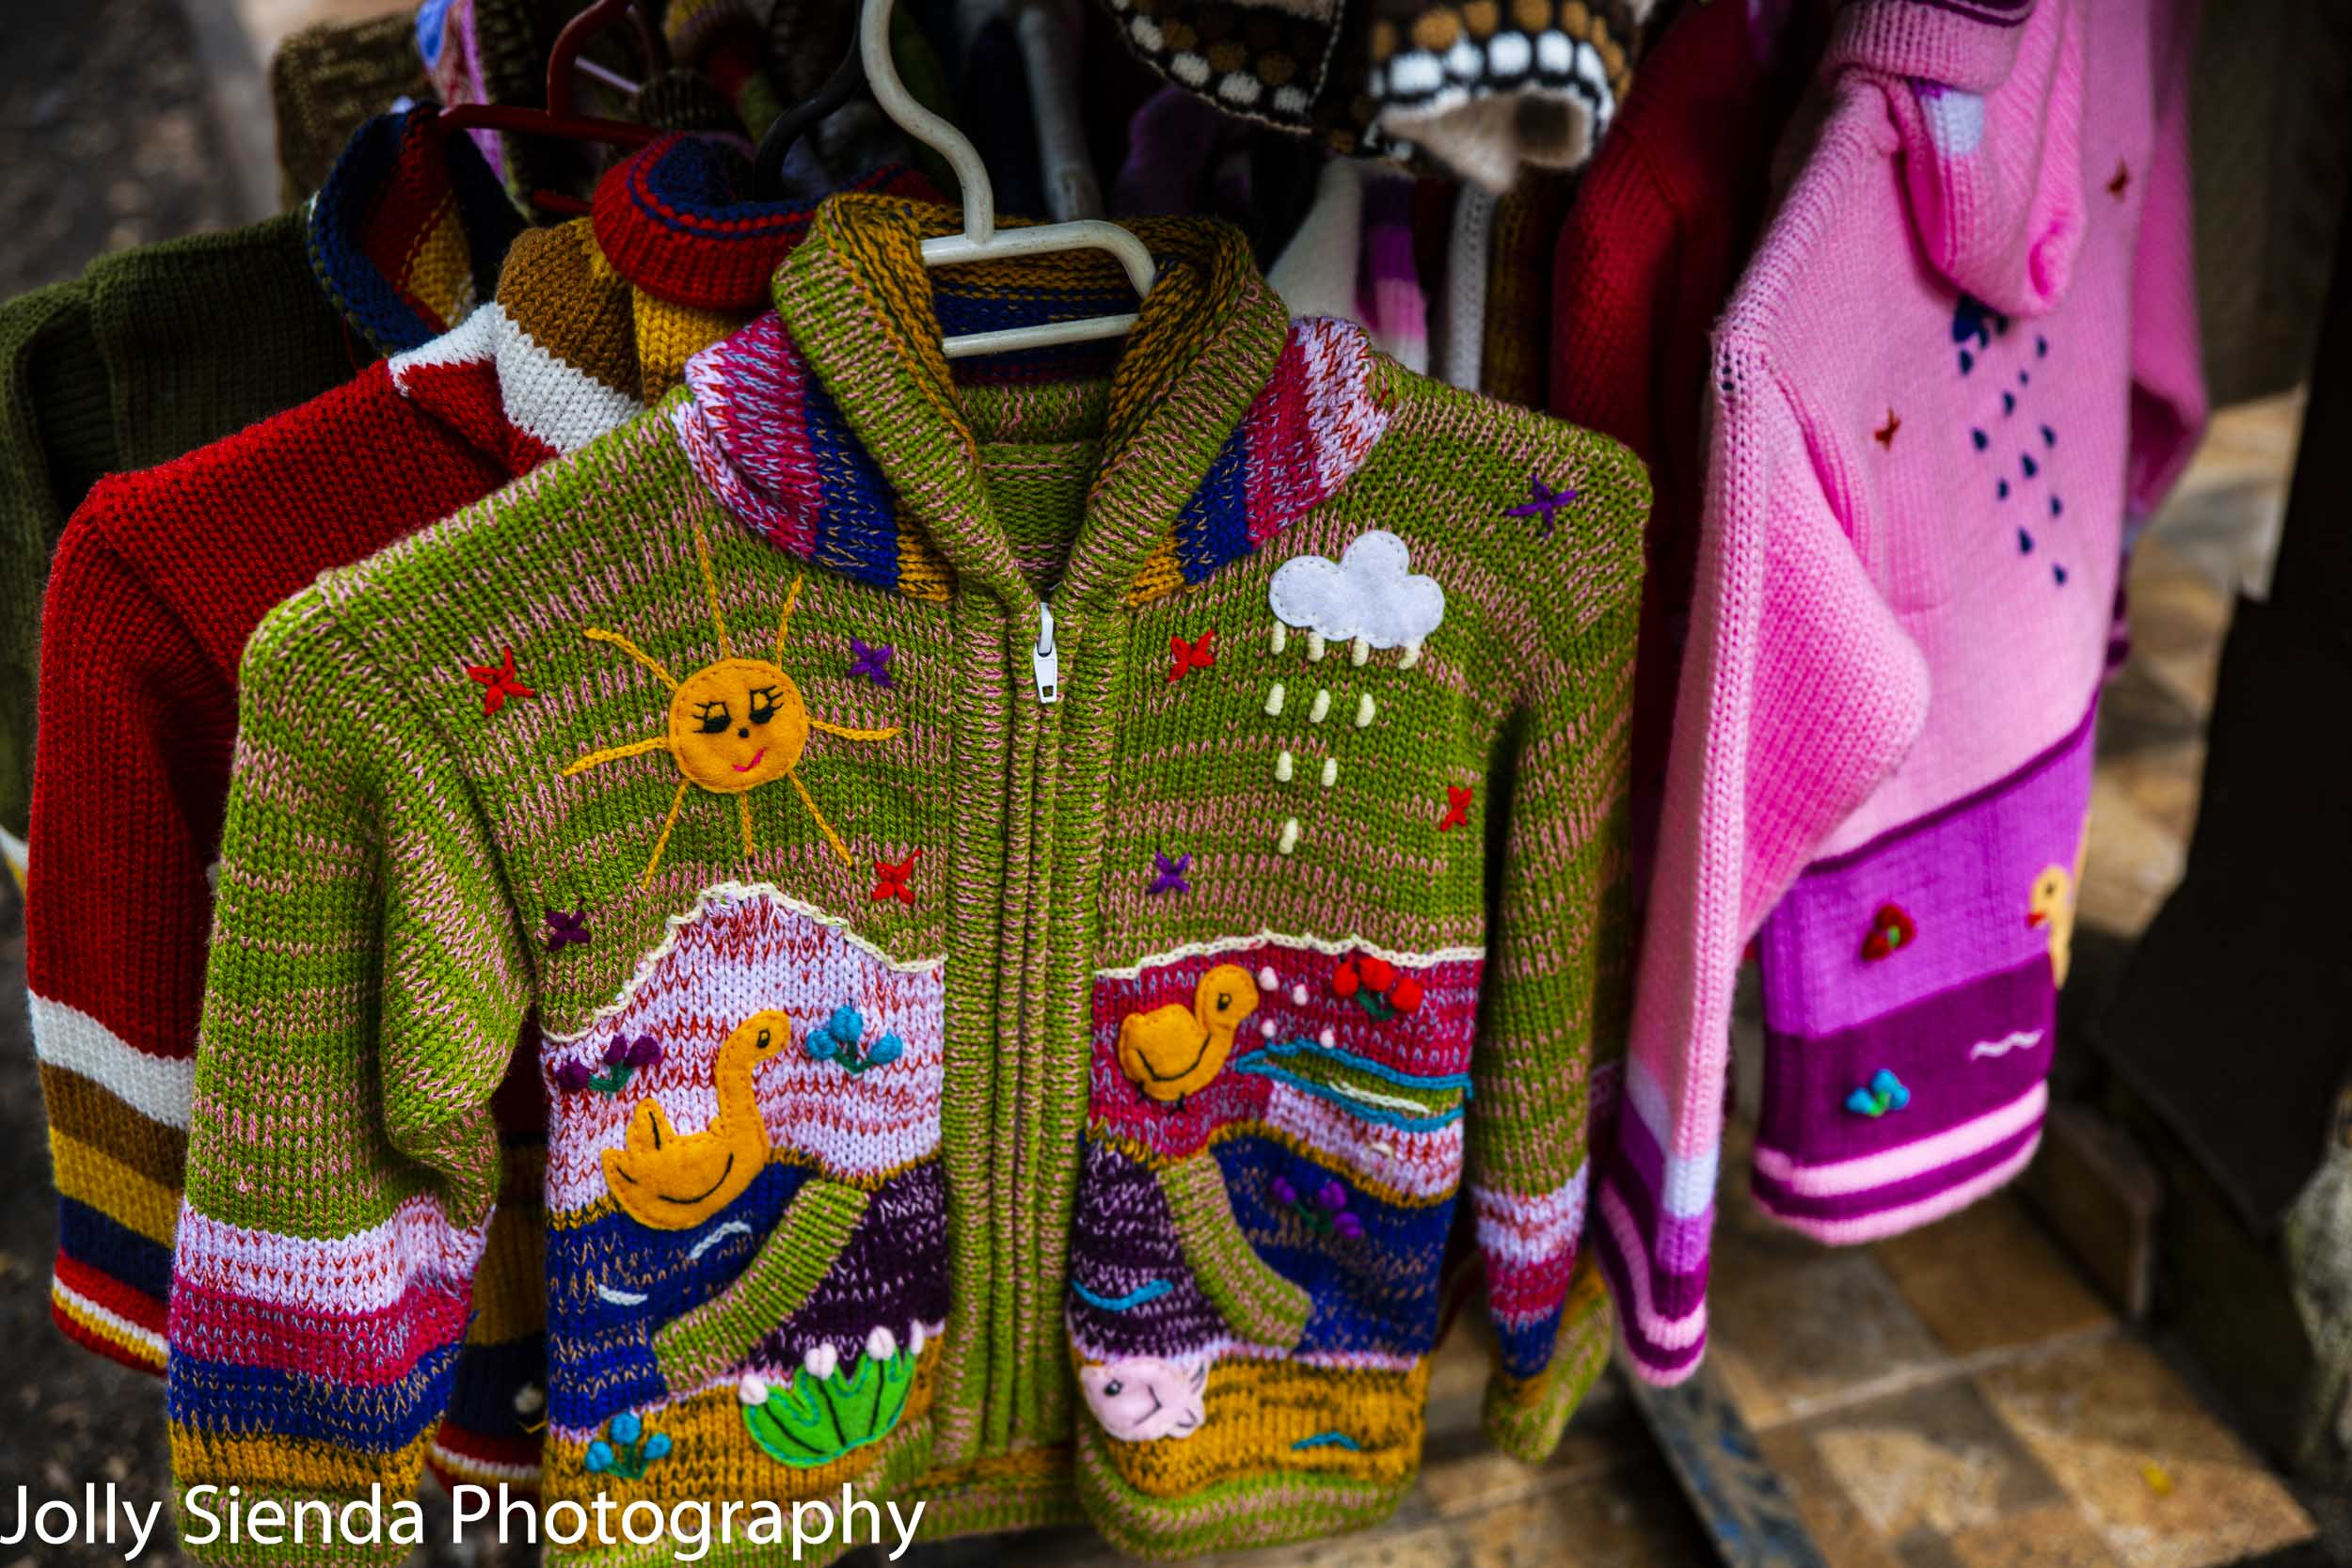 Colorful Chilean childrens woven sweaters